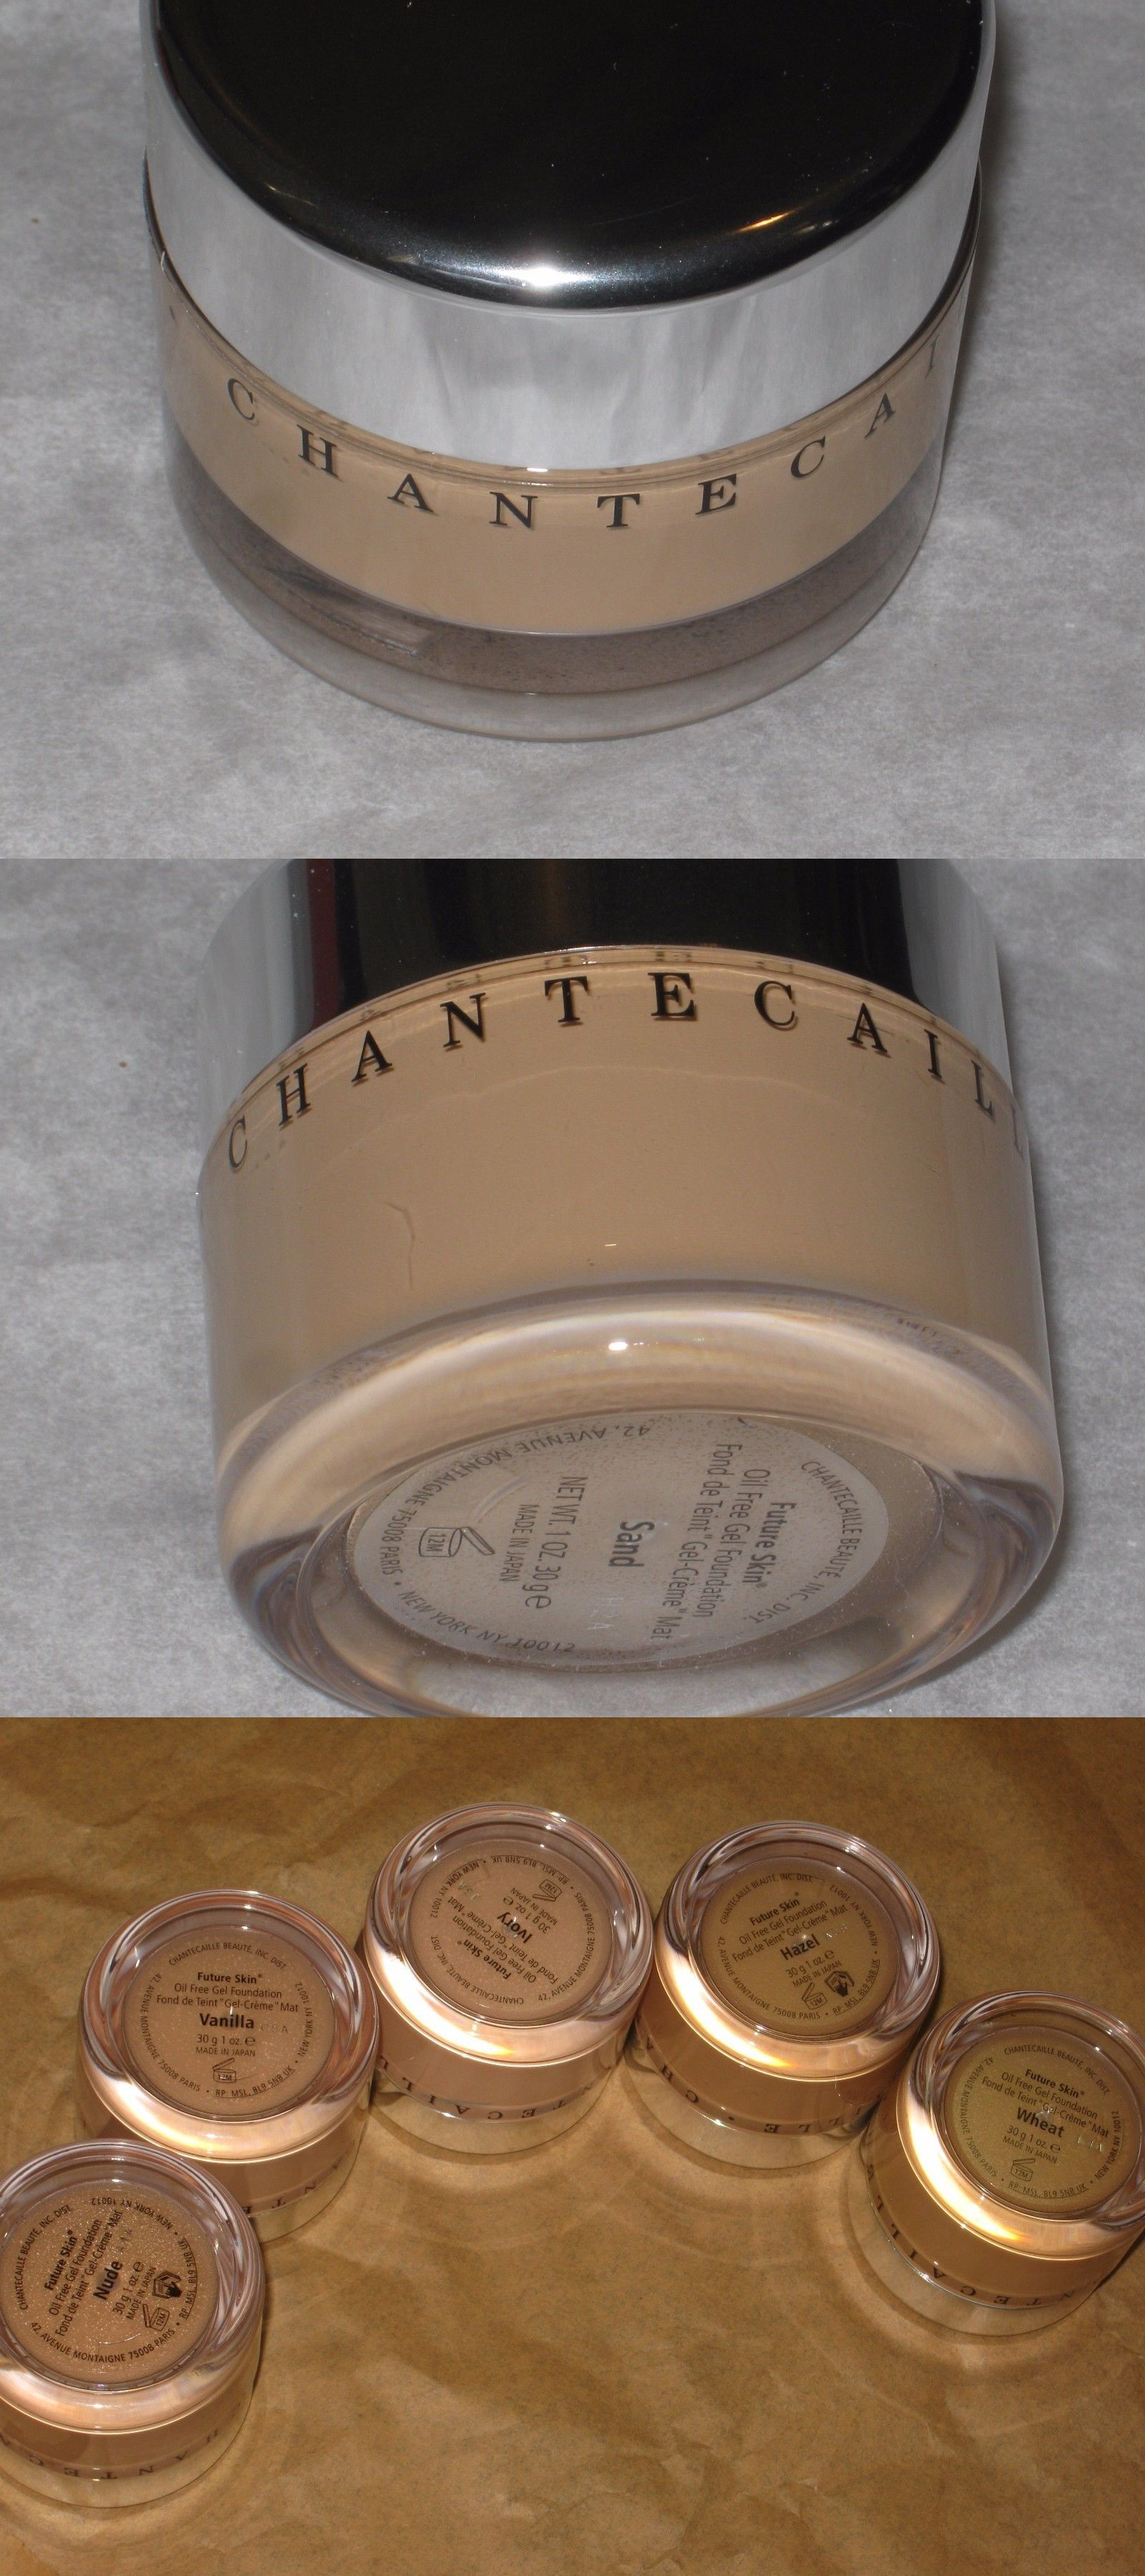 Foundation: Chantecaille Sand Future Skin Foundation $76.00 New 1 Oz. / 30 Ml BUY IT NOW ONLY: $38.99